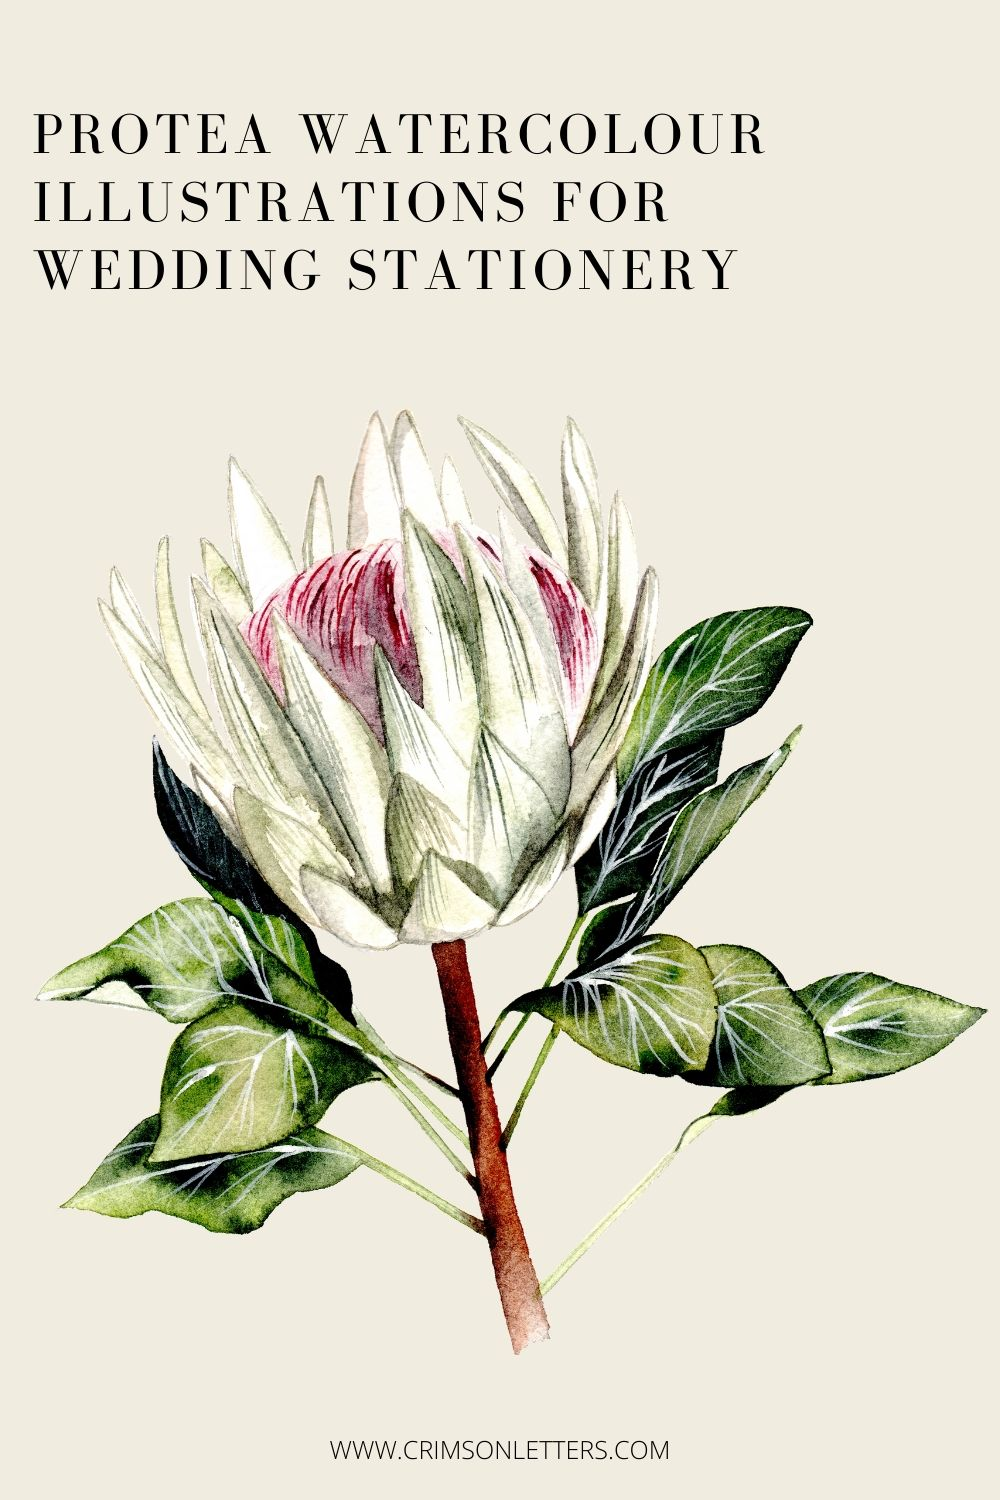 Protea watercolour illustrations for wedding stationery